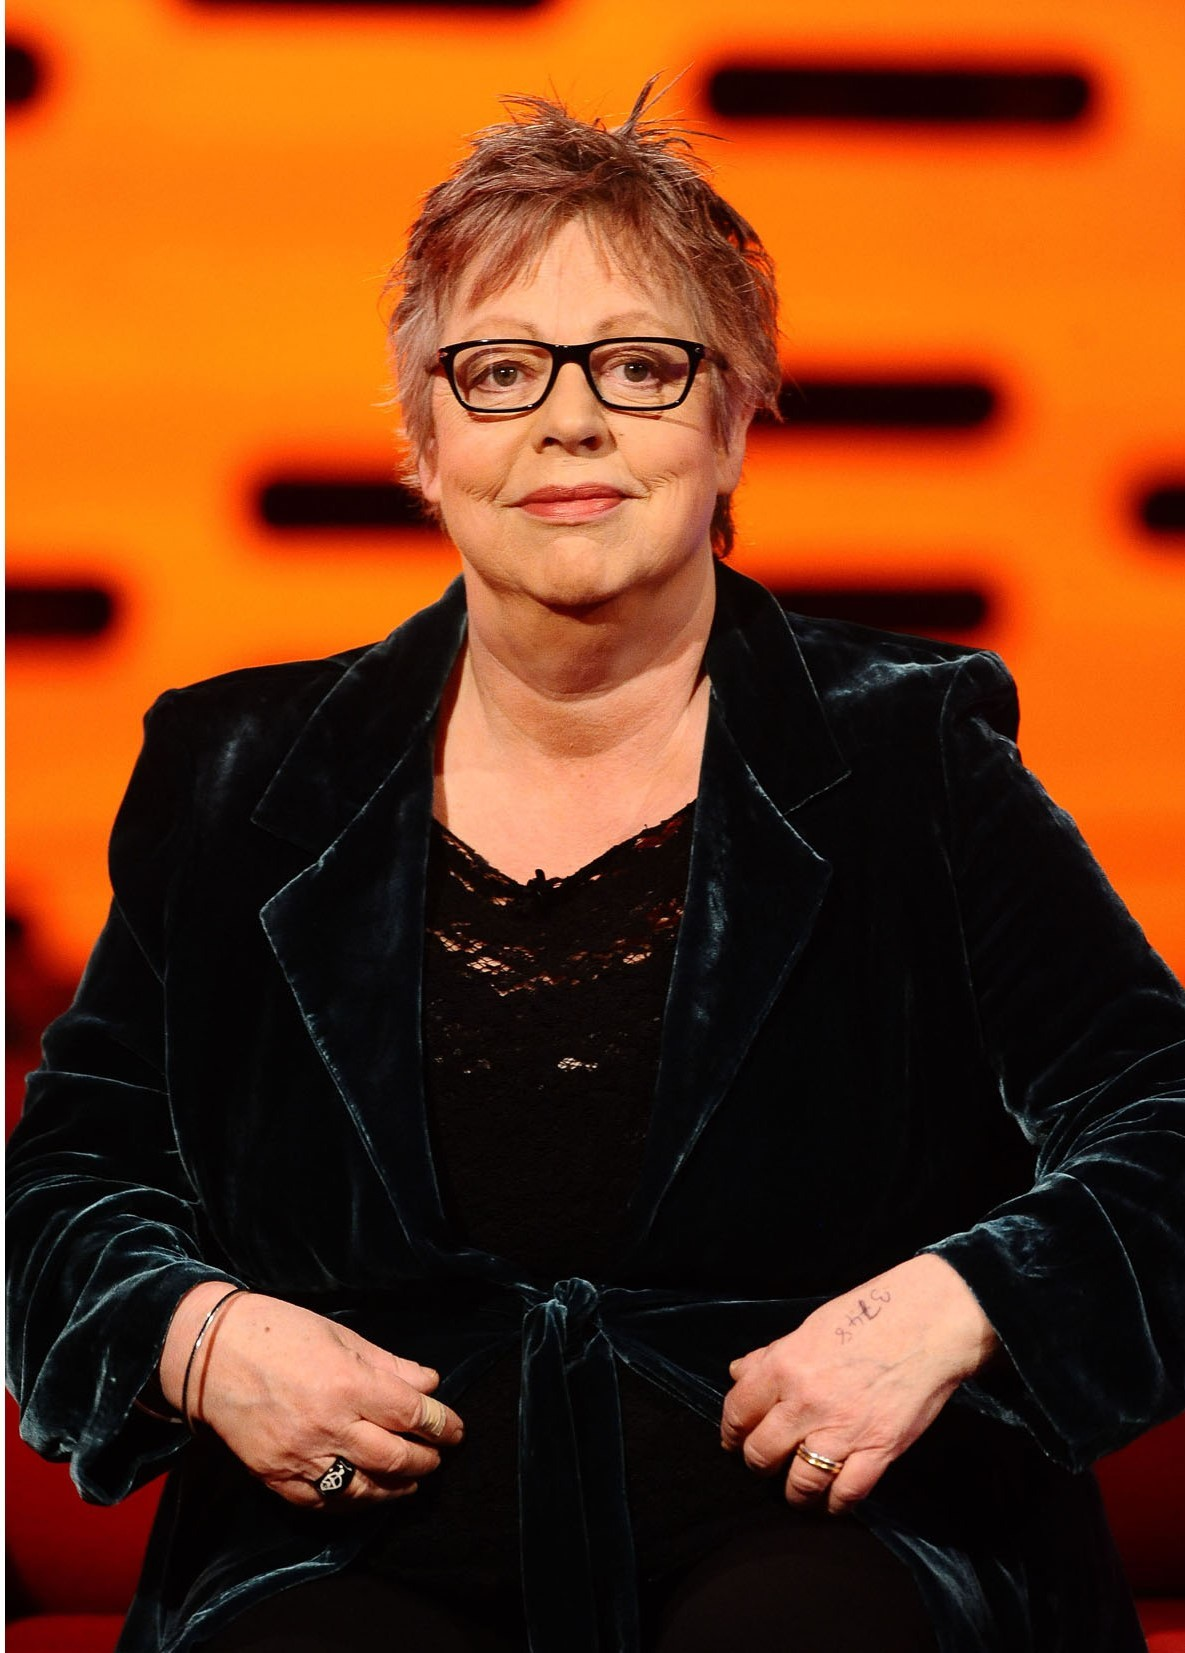 Voices: What Jo Brand said was free speech